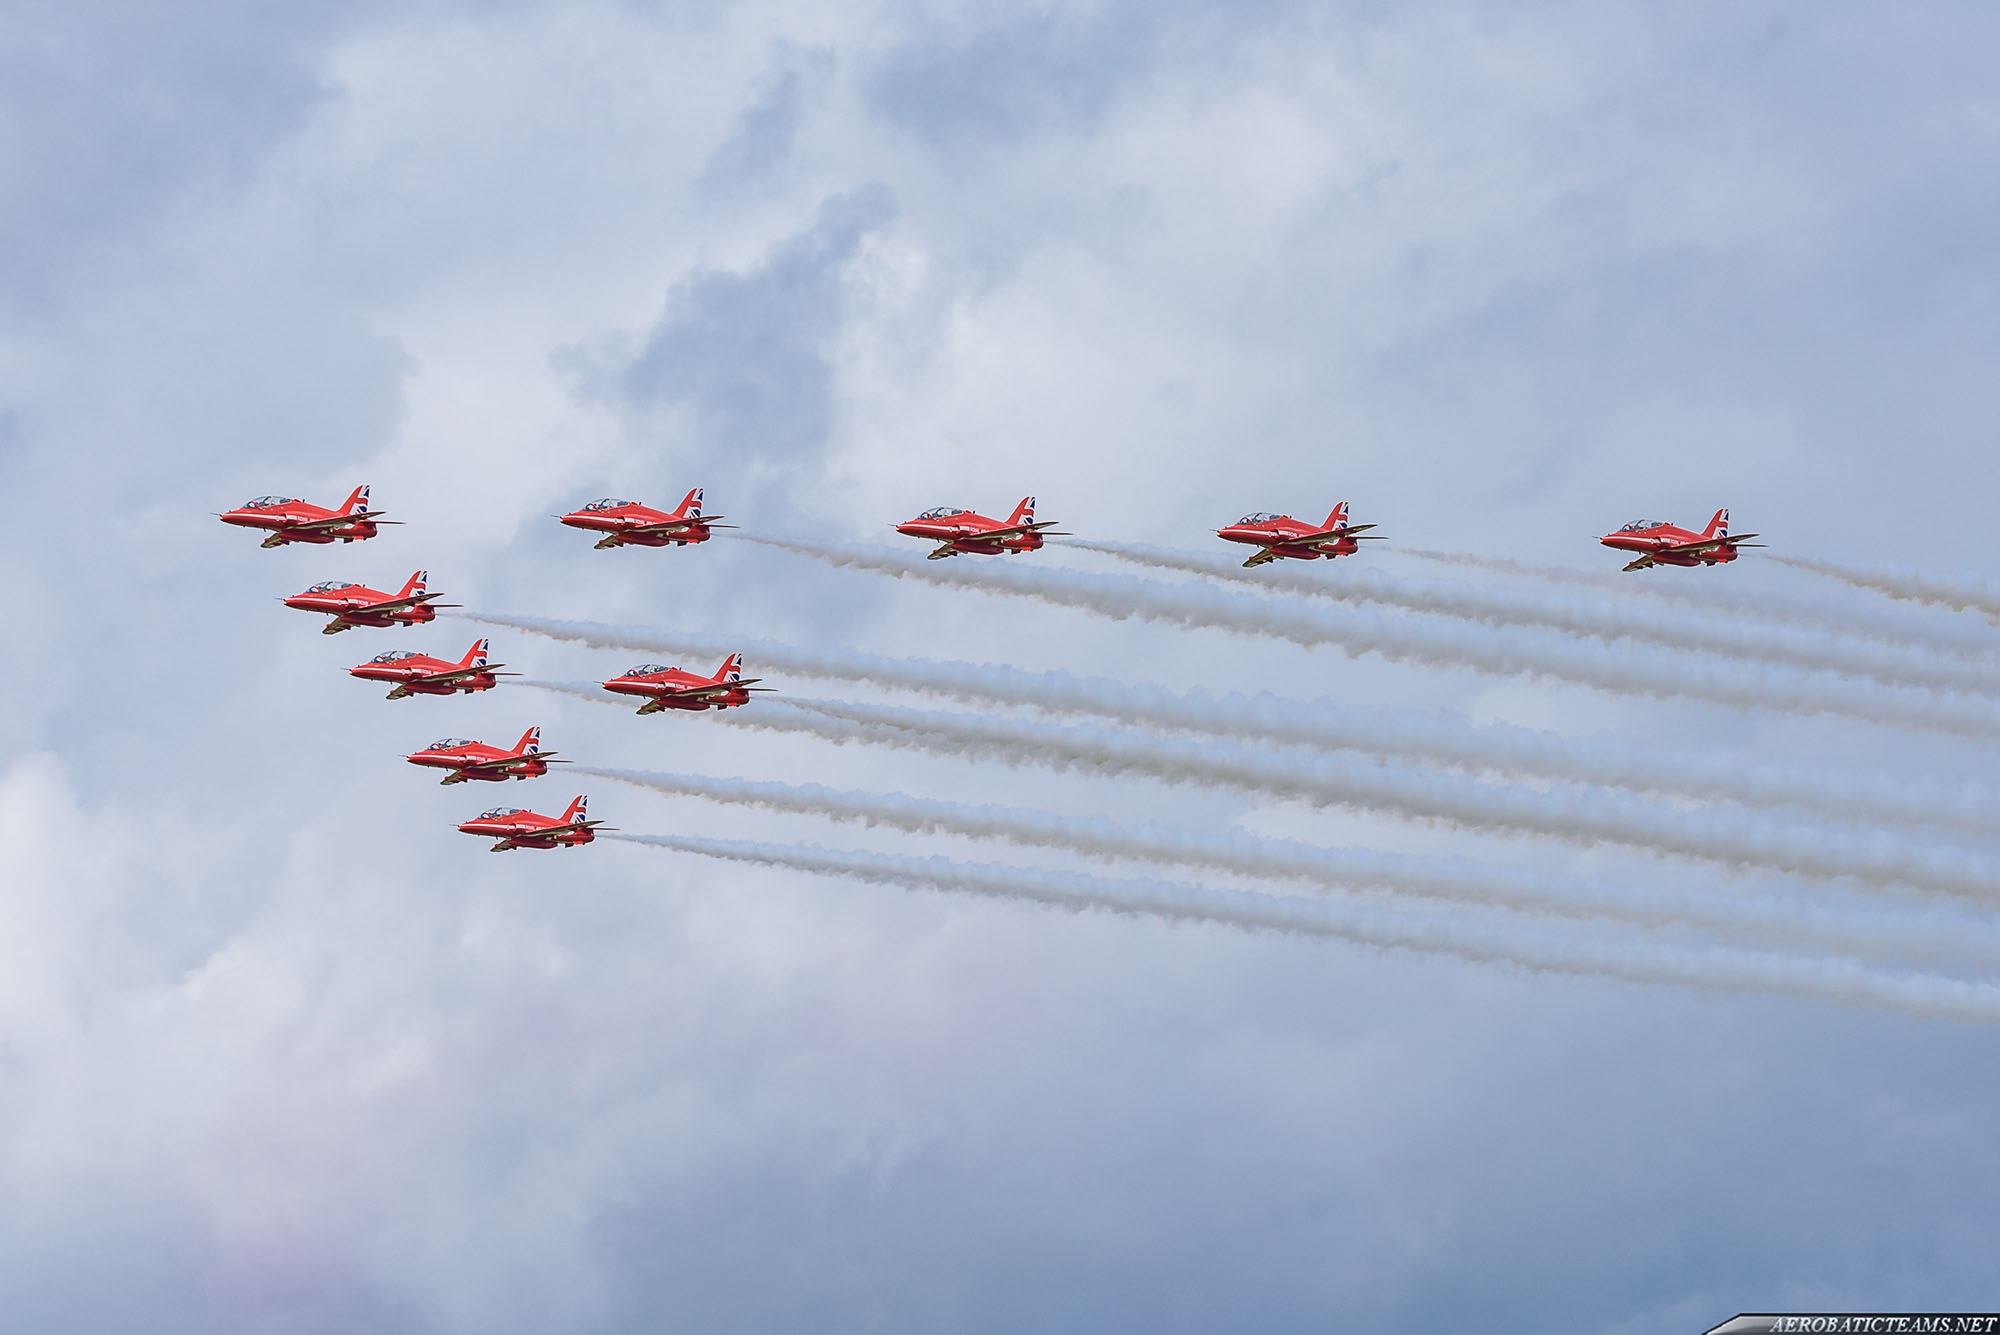 Red Arrows in ten-ship formation for photography purposes.